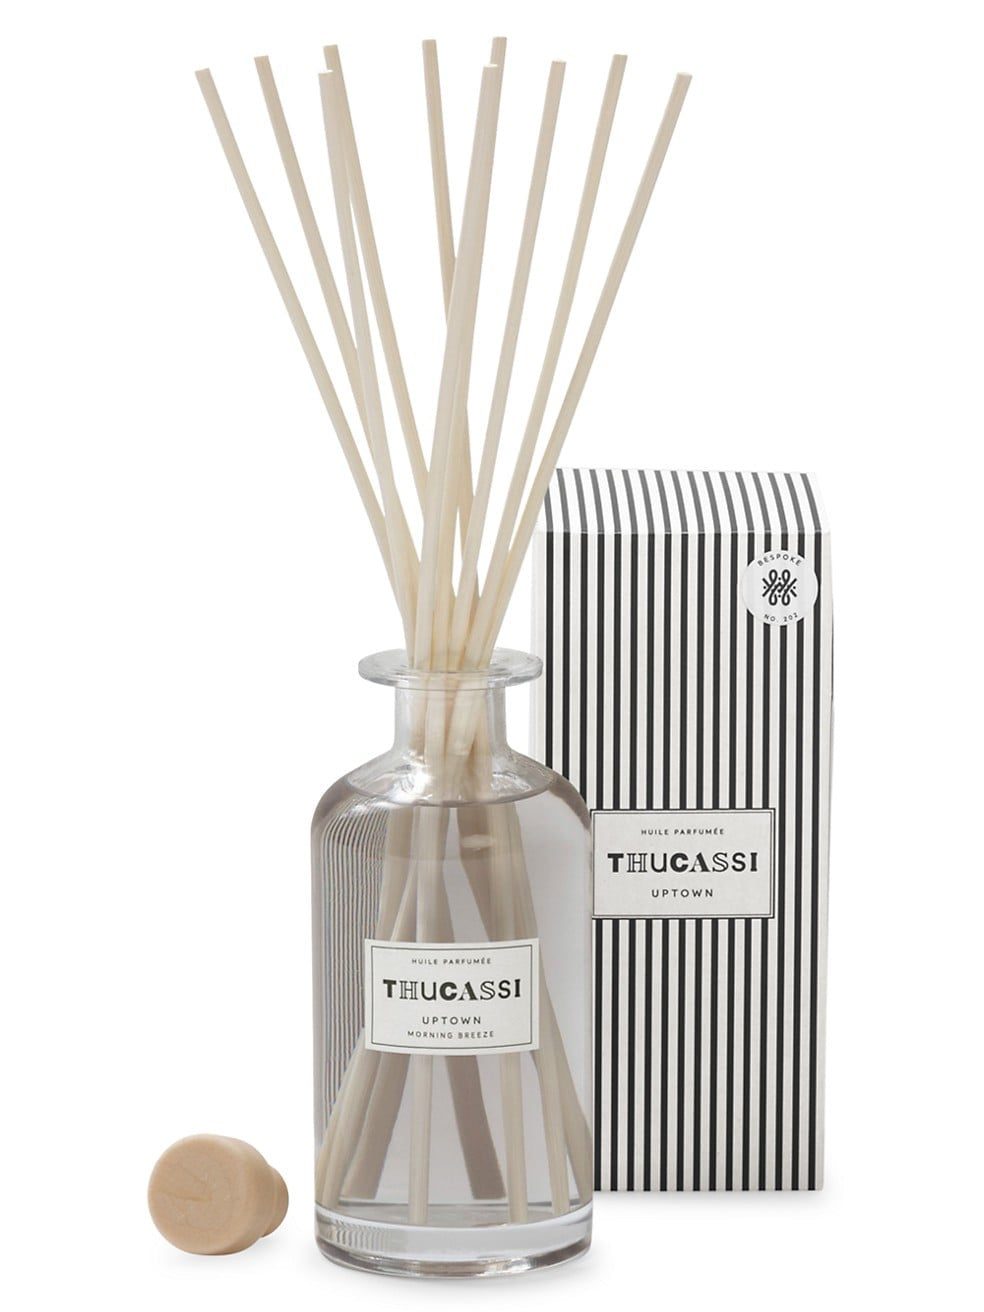 Thucassi Uptown Morning Breeze Diffuser